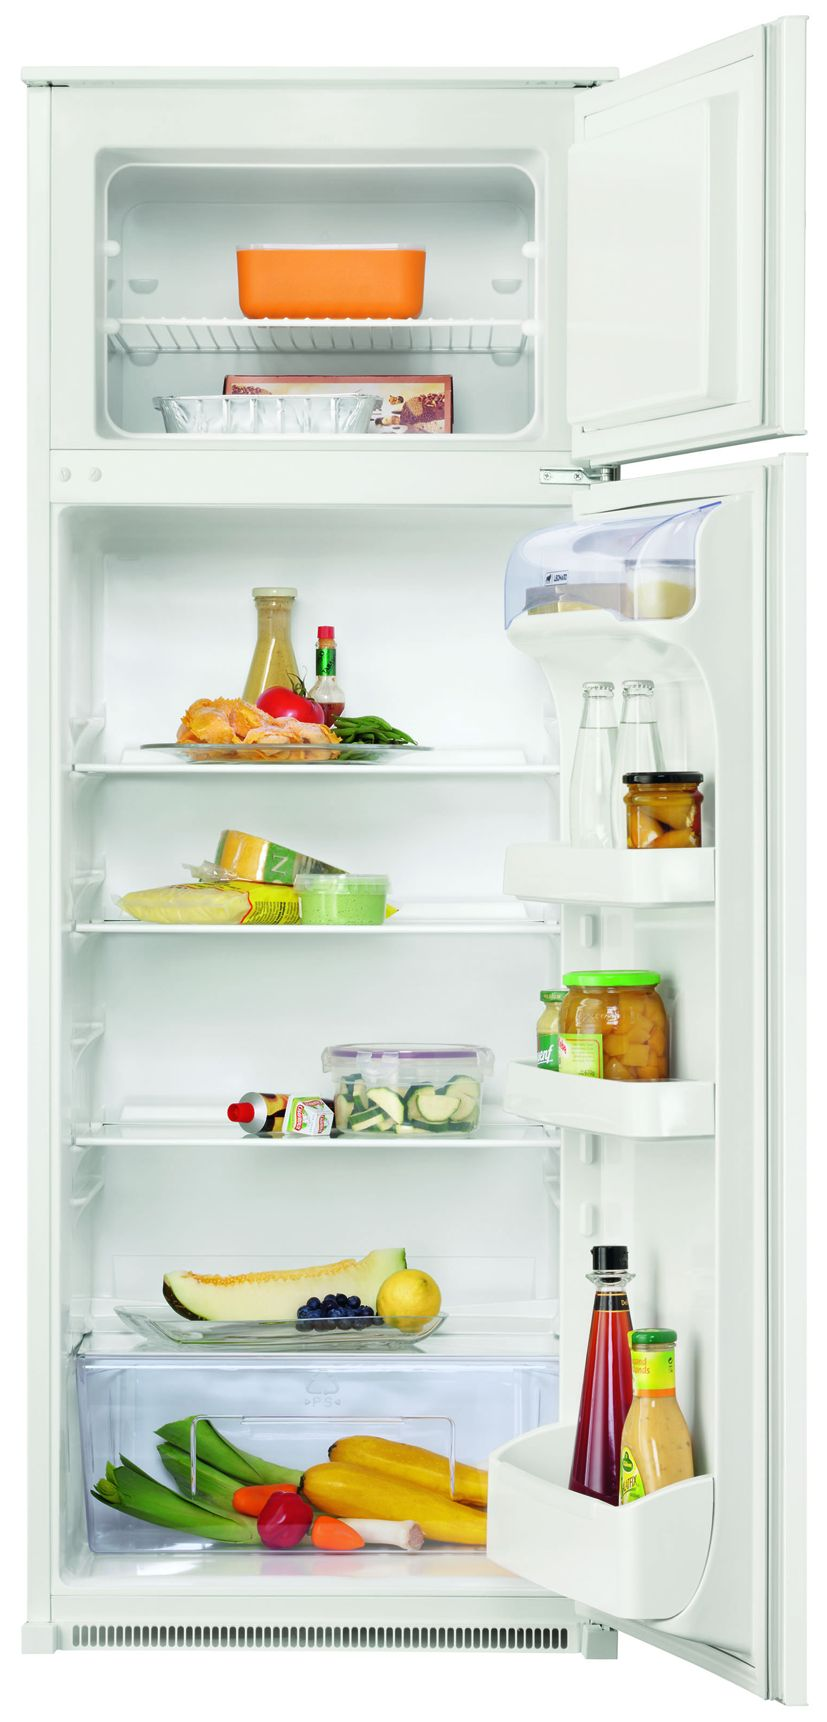 Leonard built-in fridge LKT1441 fridge-freezer combination A + 218L can be integrated with sliding door for 145 mm niche